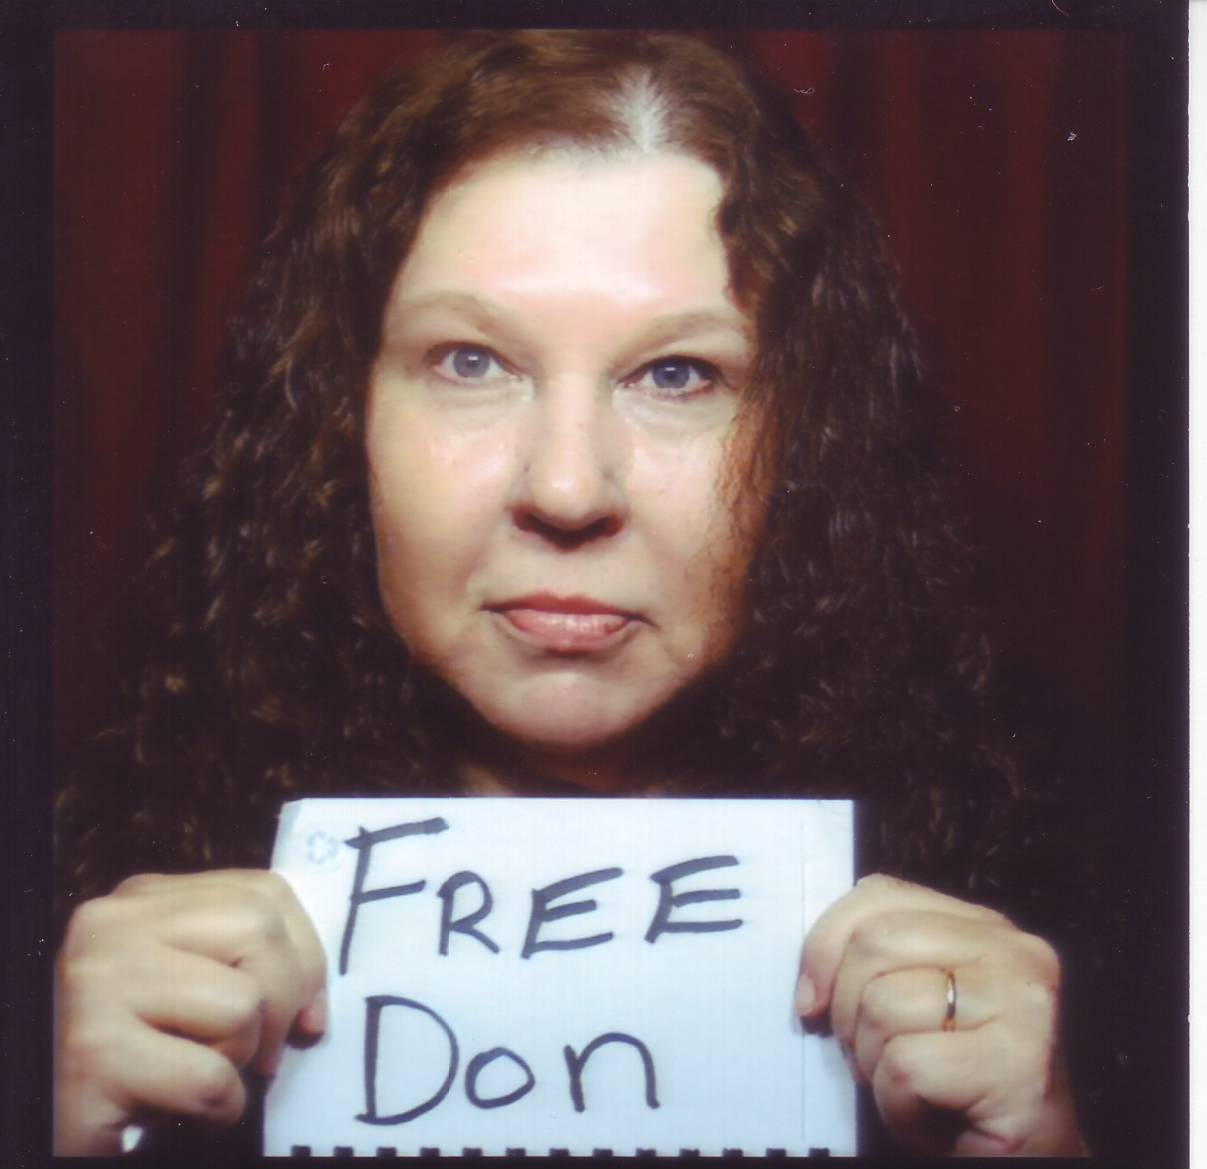 Pam Miles Free Don Sign